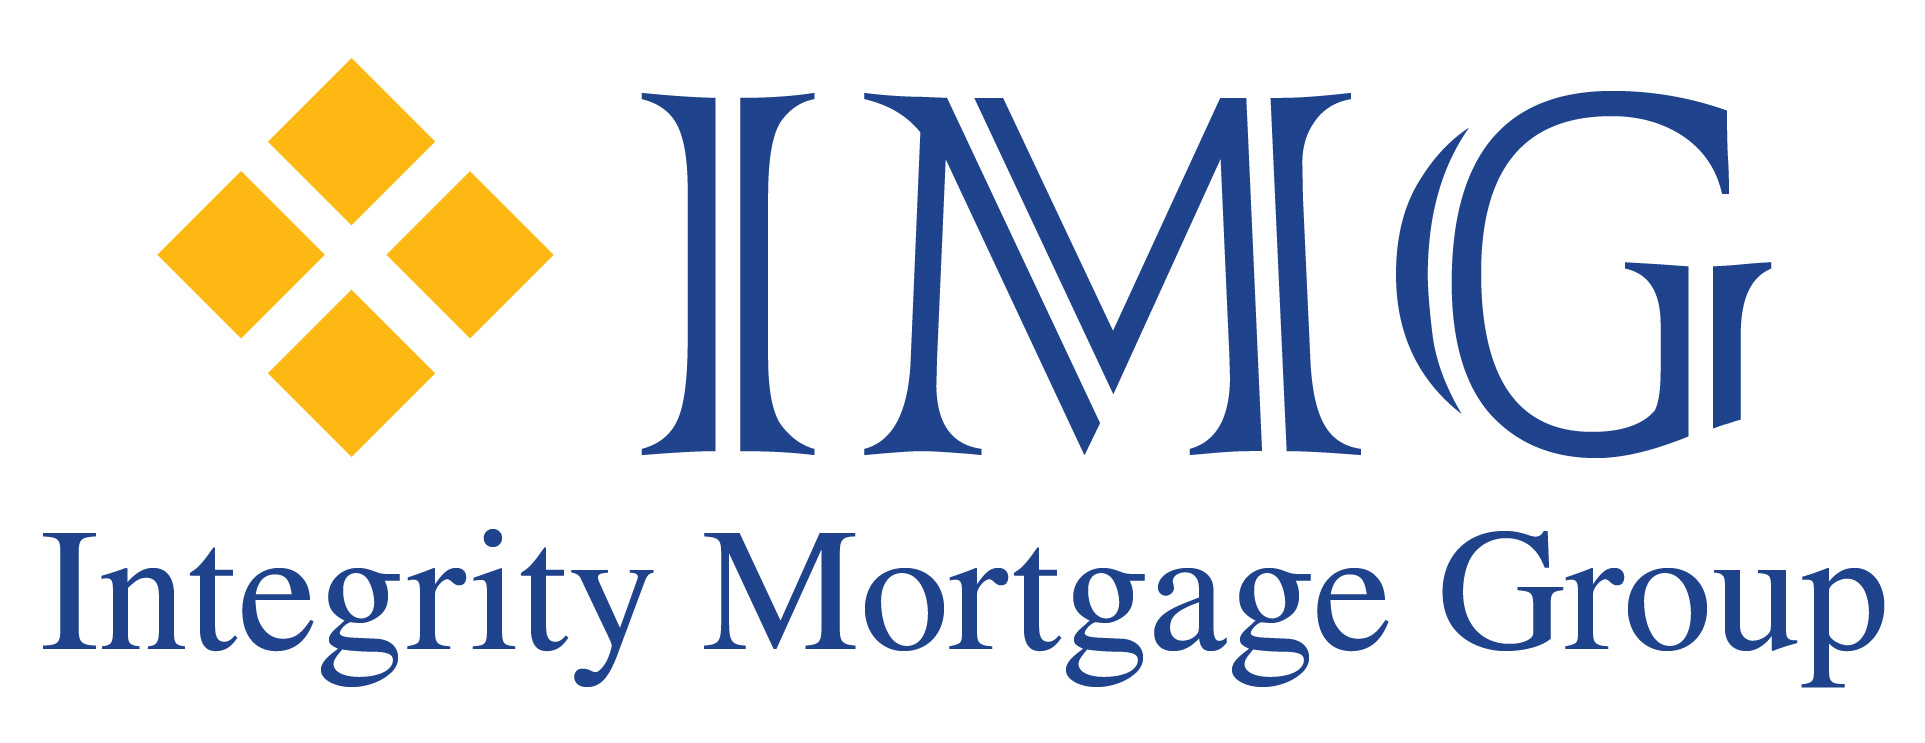 Integrity Mortgage Group logo